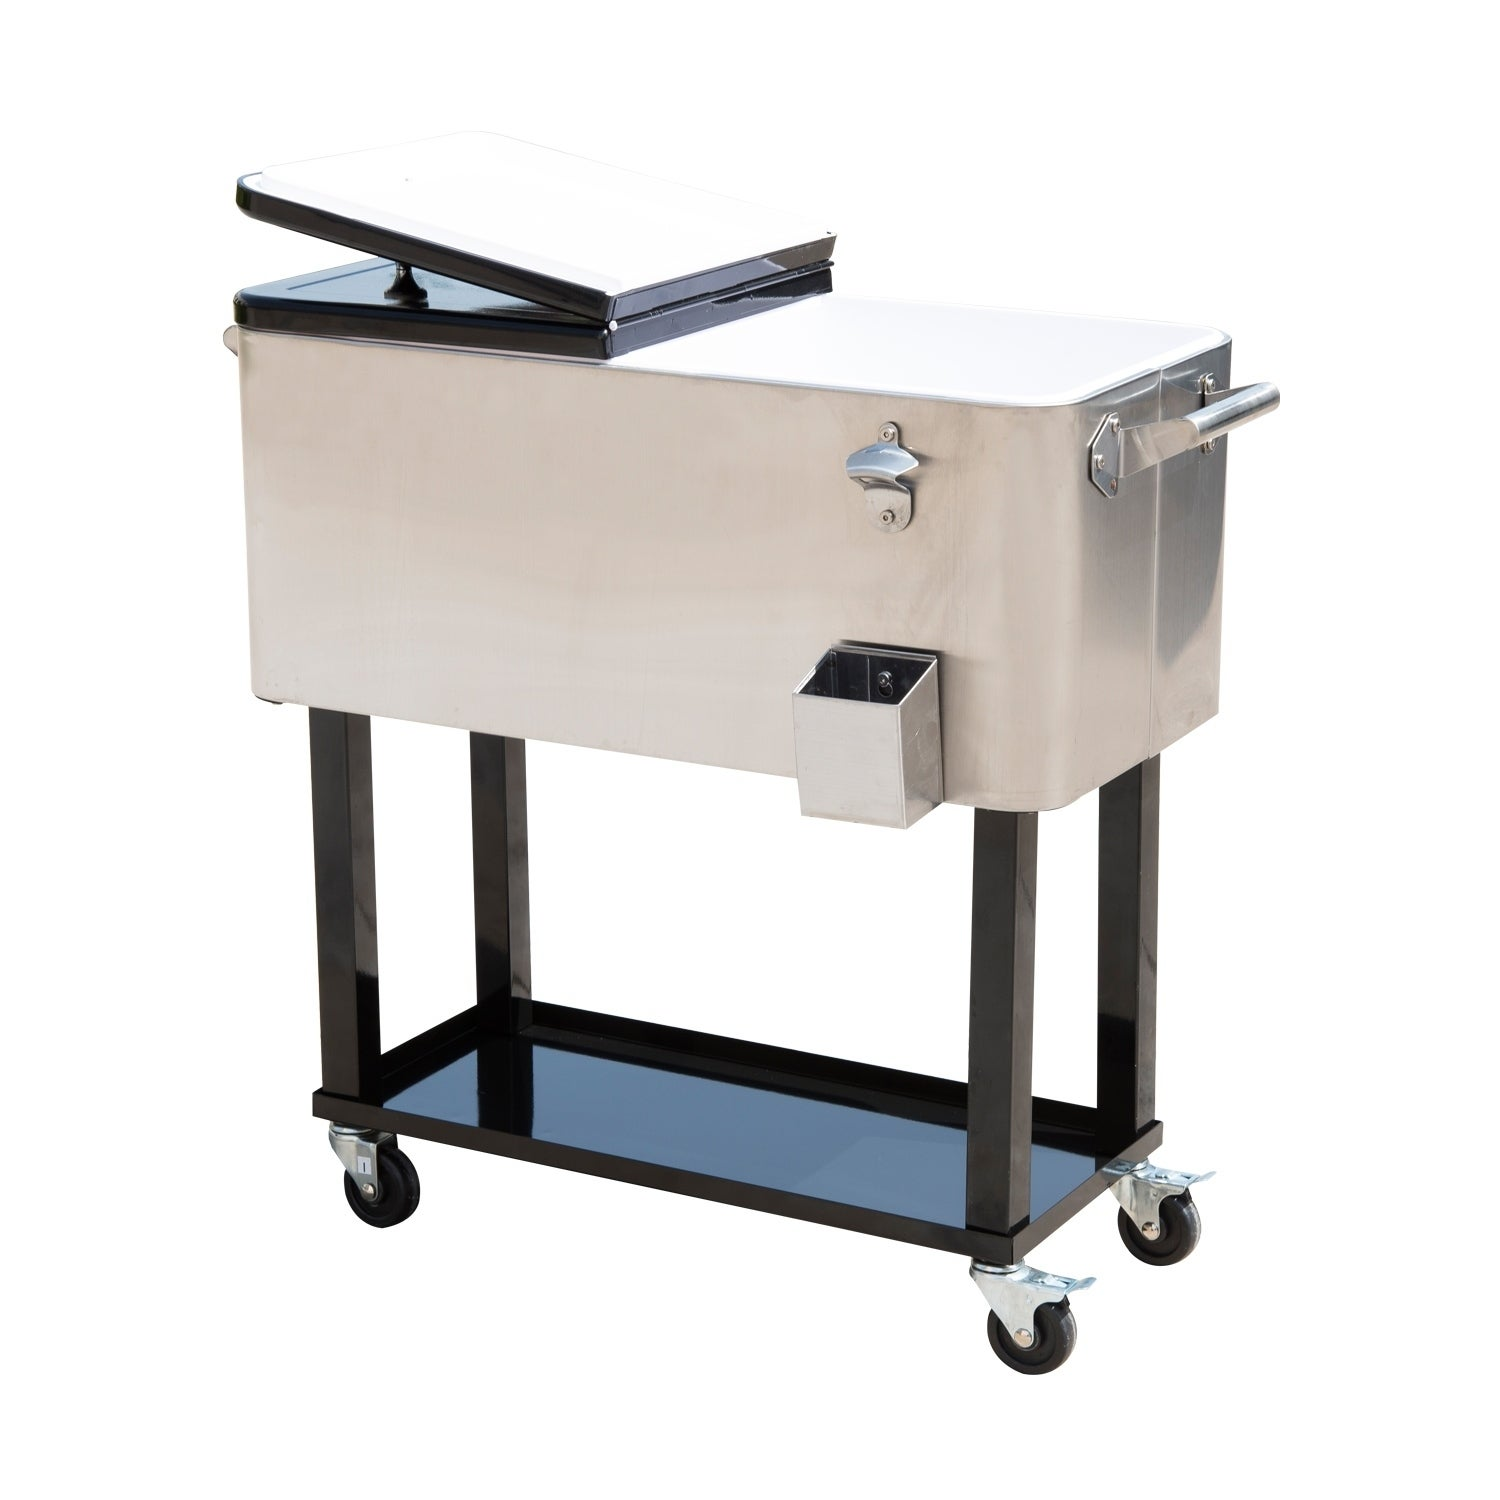 Shop Outsunny 80 QT Rolling Ice Chest Portable Patio Party Drink Cooler  Cart   Stainless Steel   On Sale   Free Shipping Today   Overstock.com    18109350